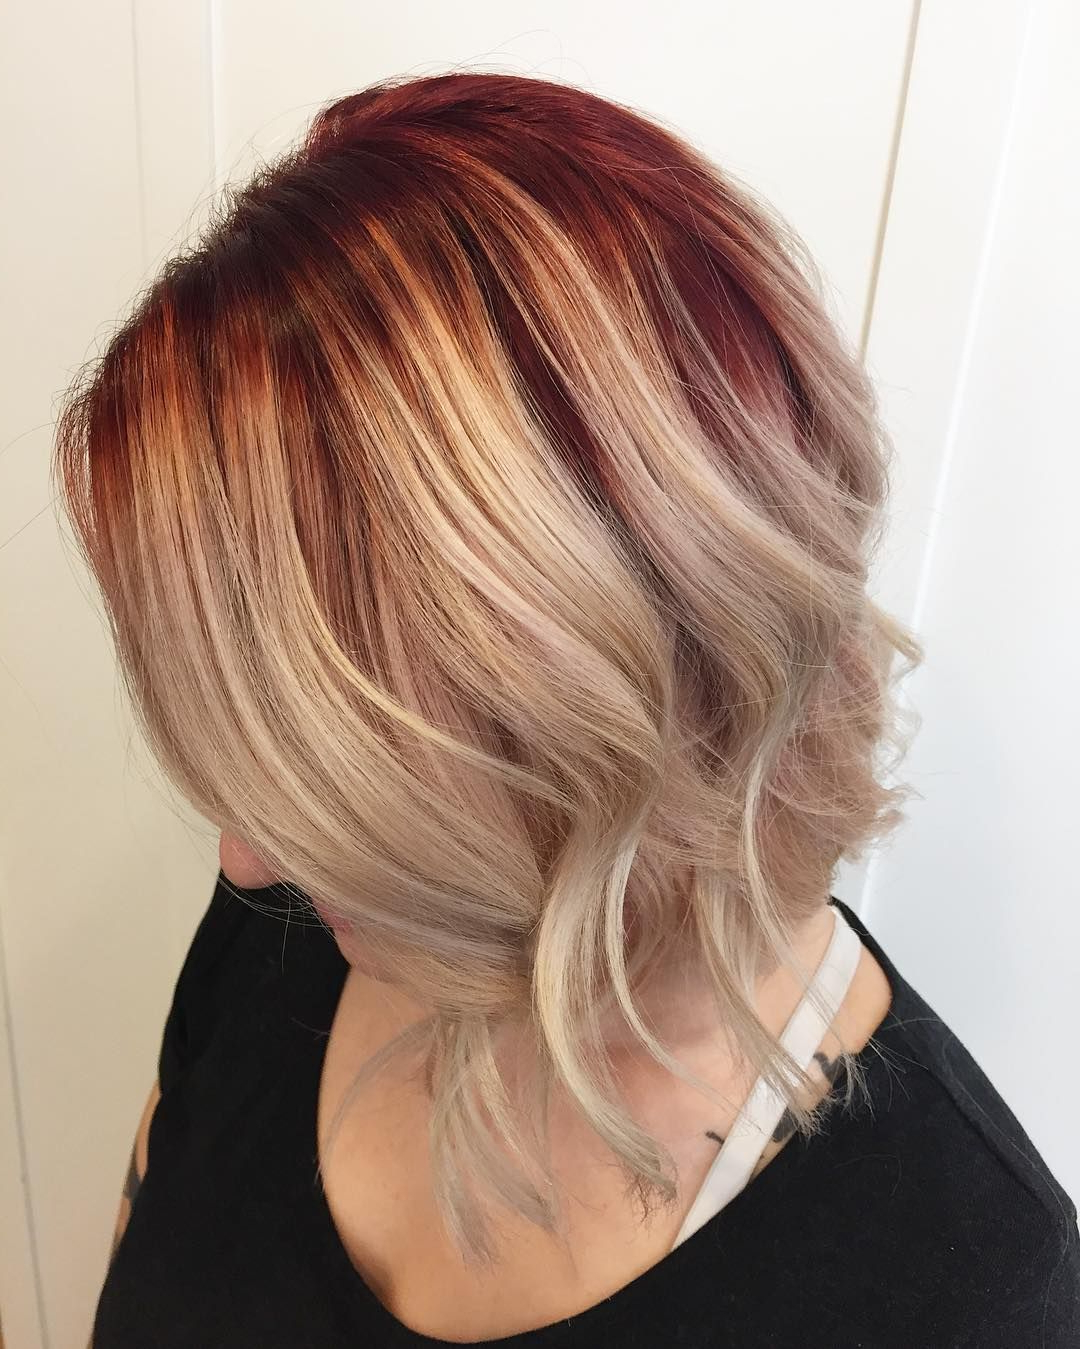 45 Inspirational Red And Blonde Hair — Trend Ideas For Pertaining To Dimensional Dark Roots To Red Ends Balayage Hairstyles (View 9 of 20)